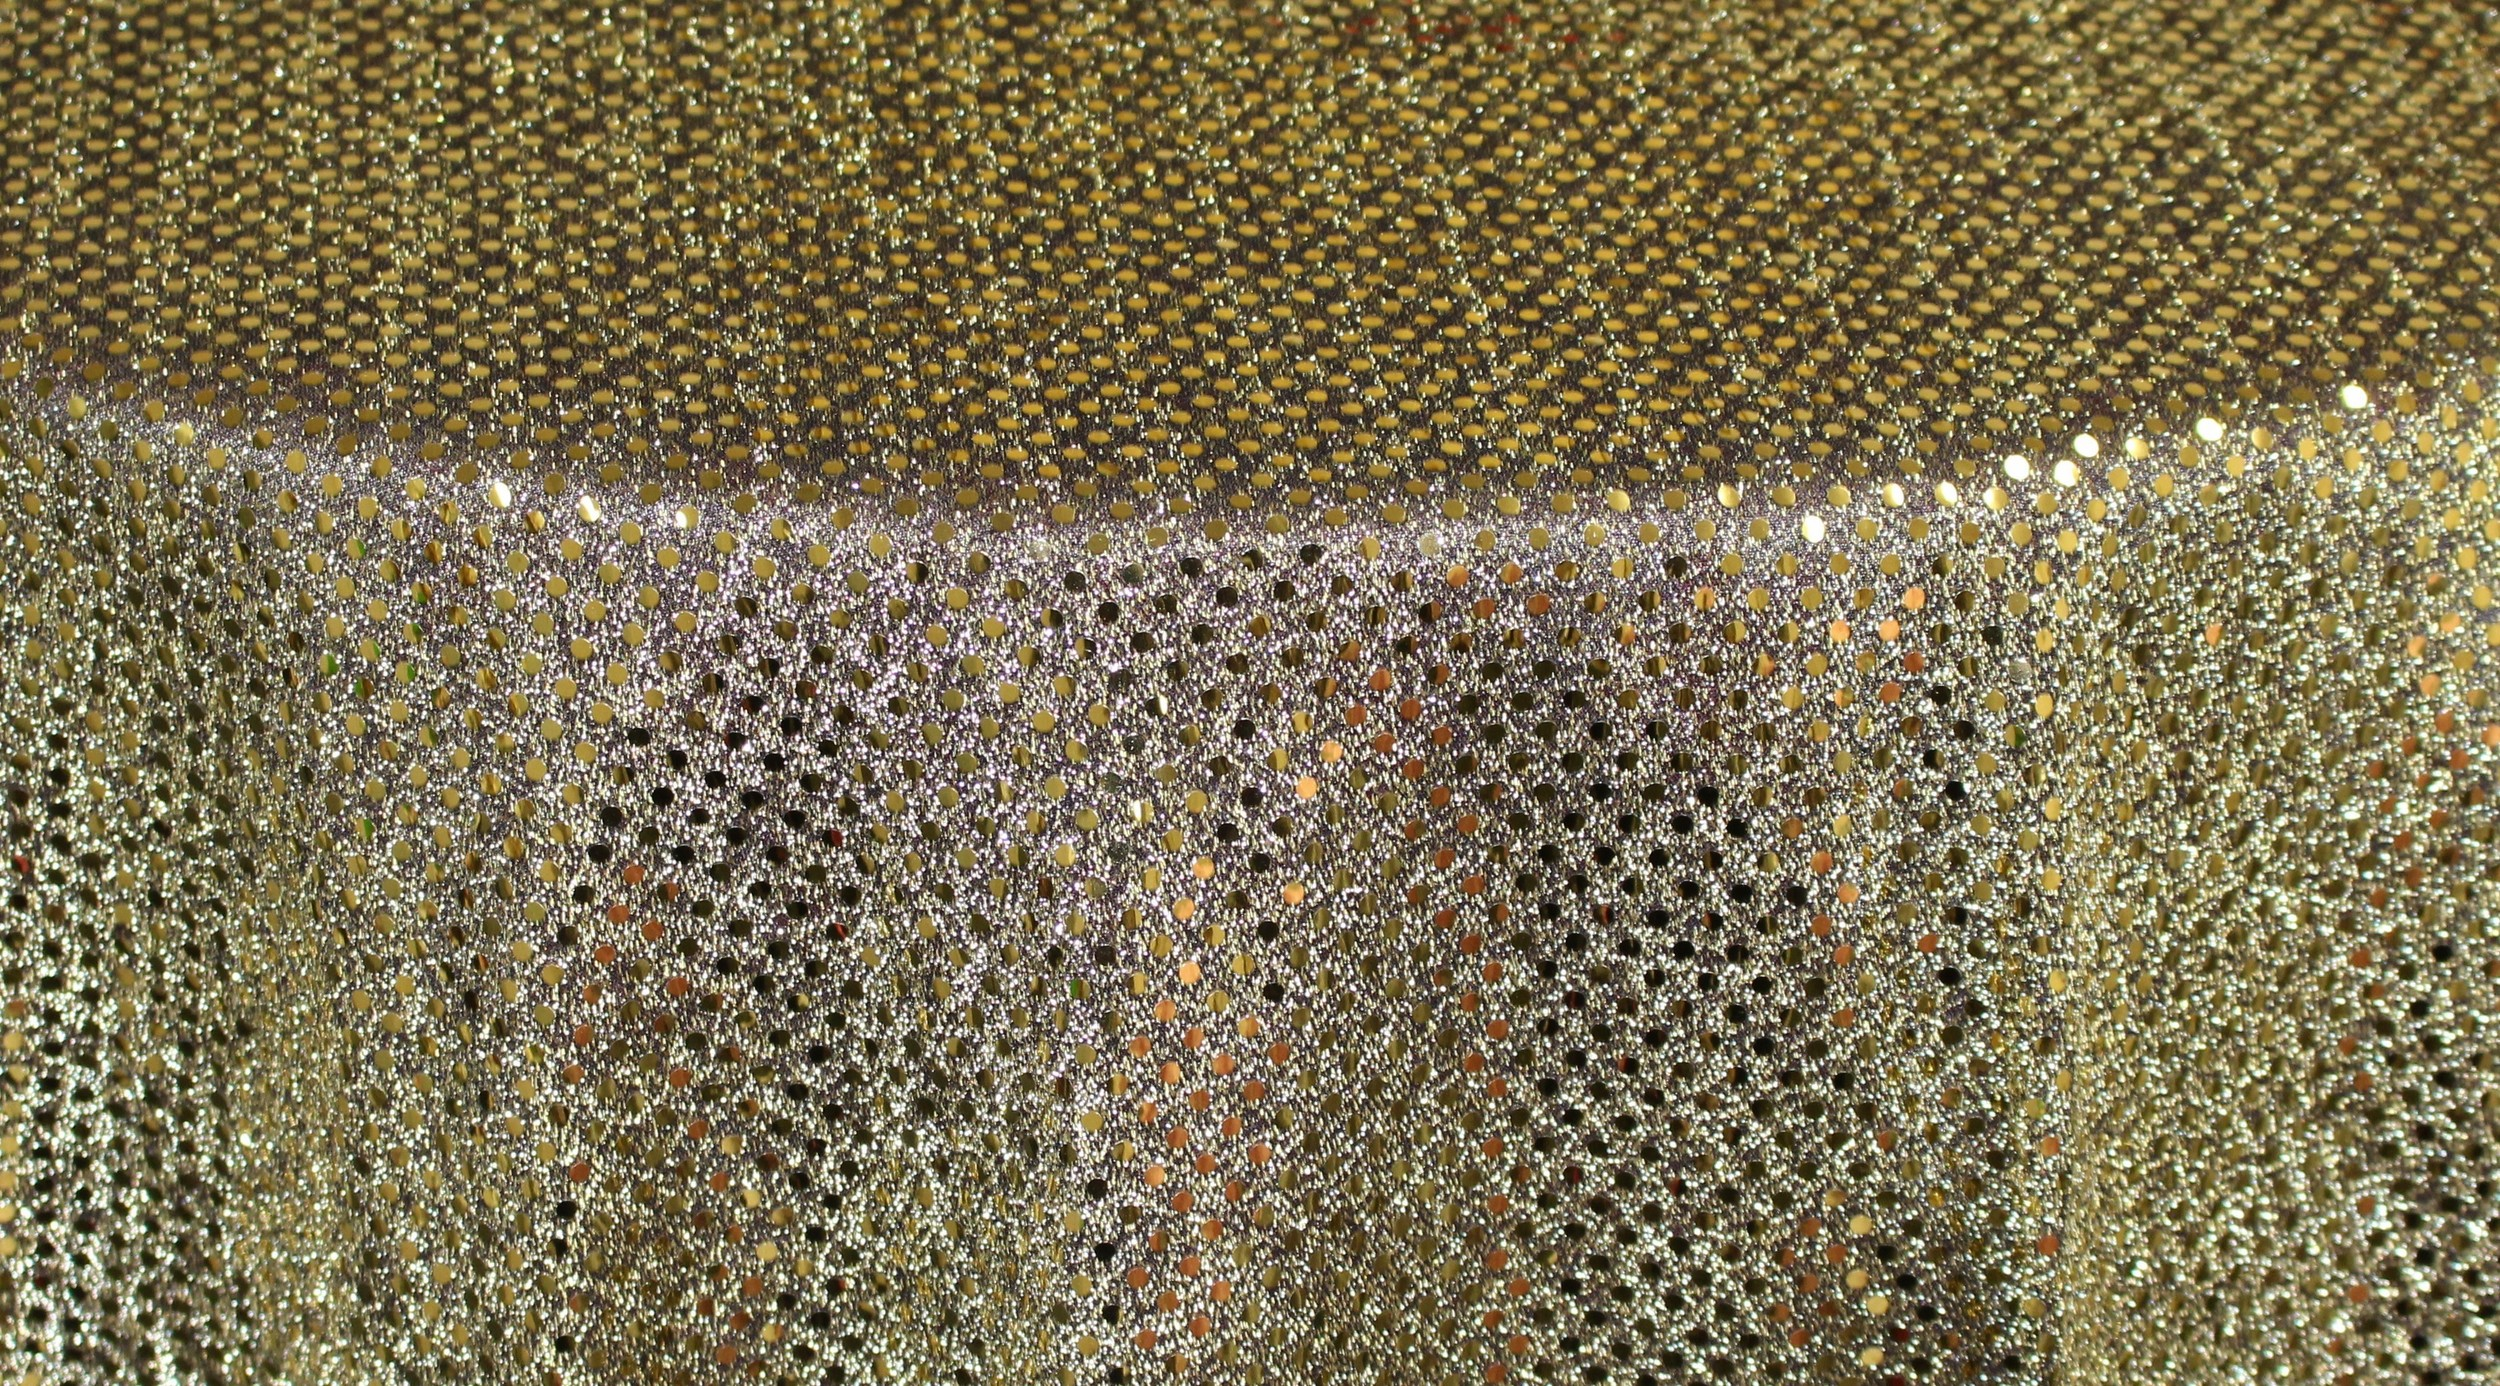 Gold & Black 3MM Sequins